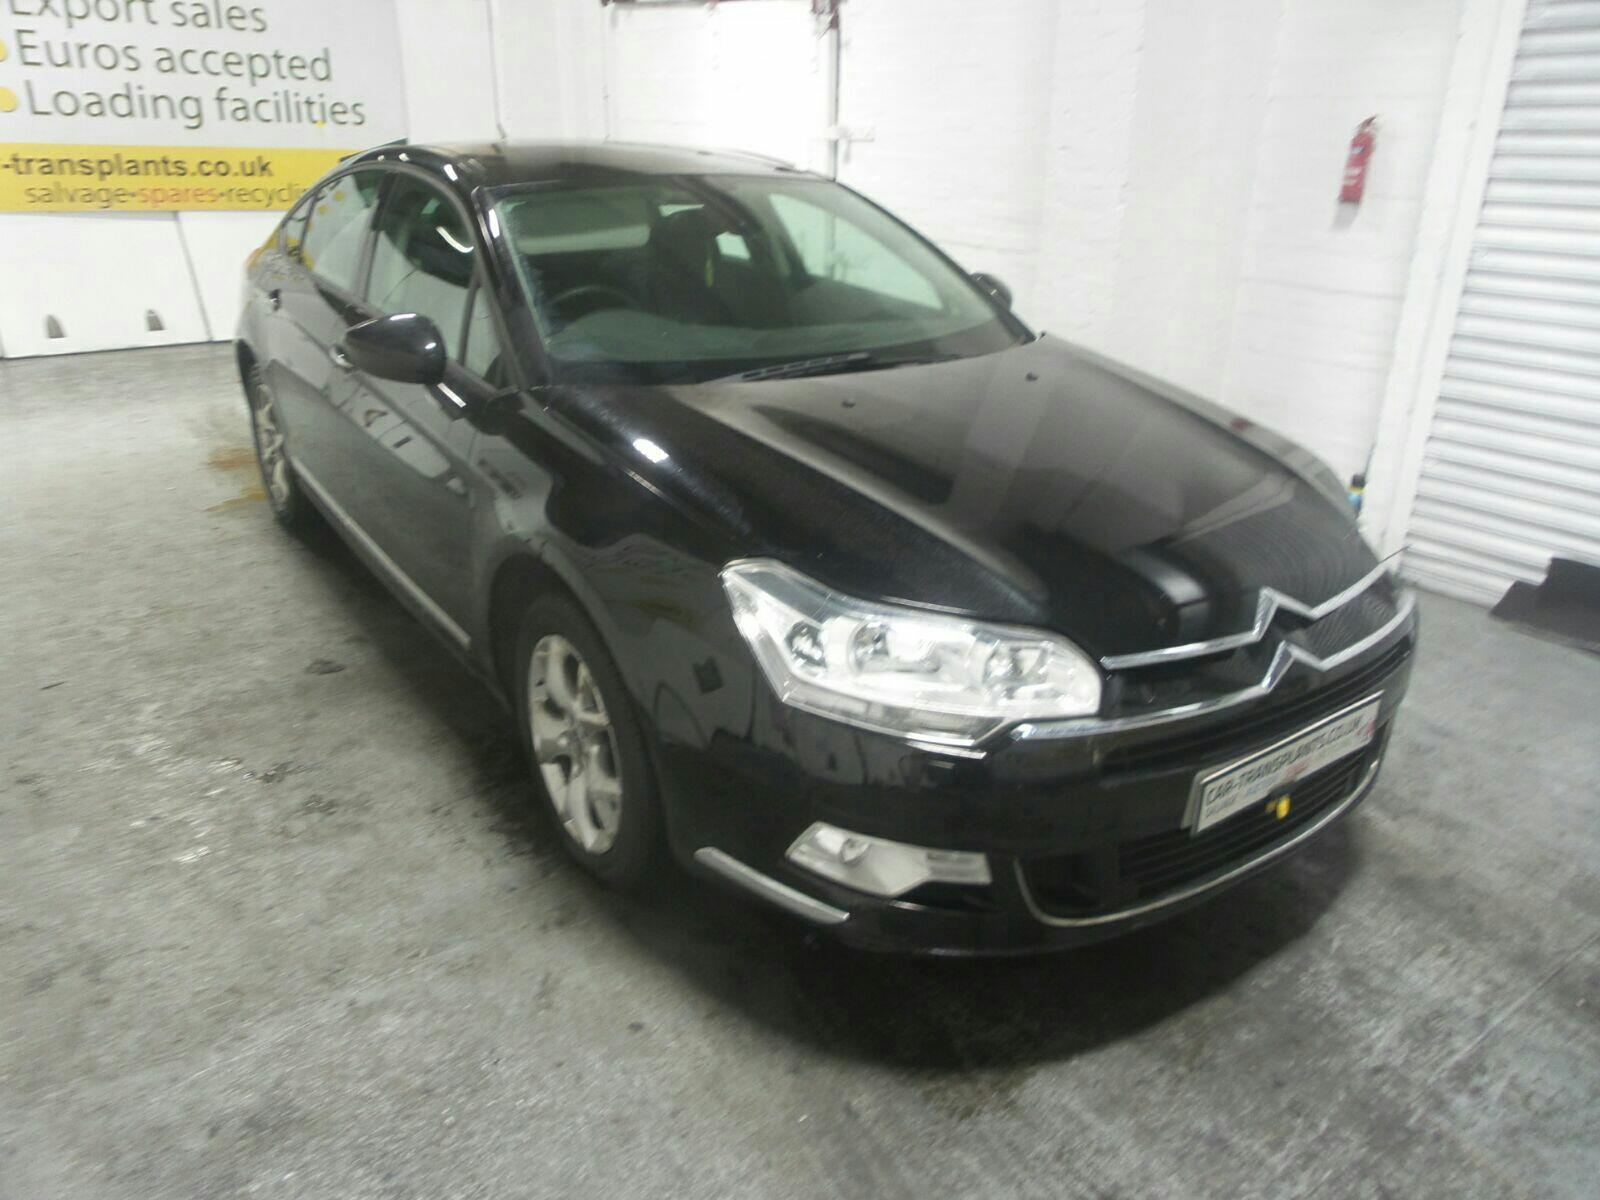 Citroen C5 2008 To 2010 VTR NAV 4 Door Saloon